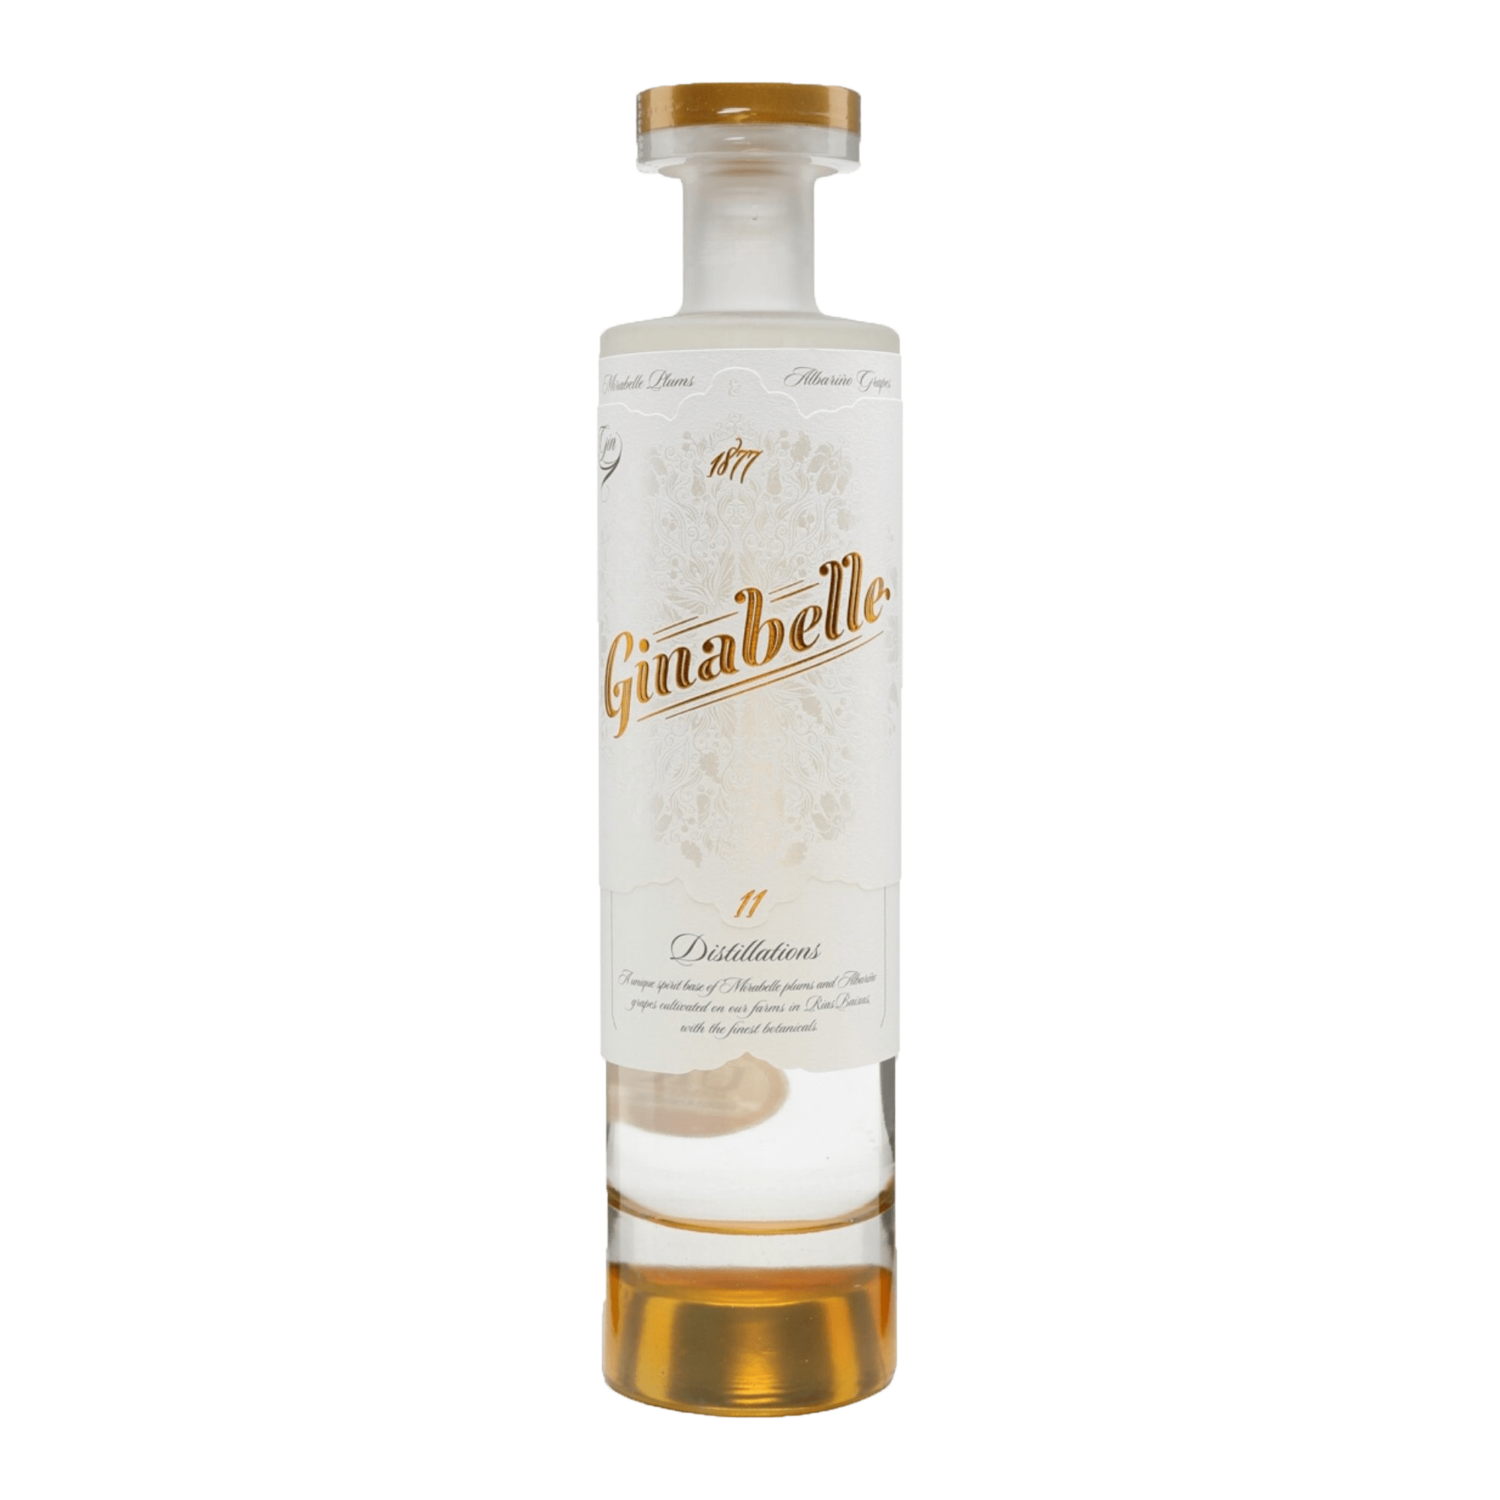 Ginabelle Gin 0.7l